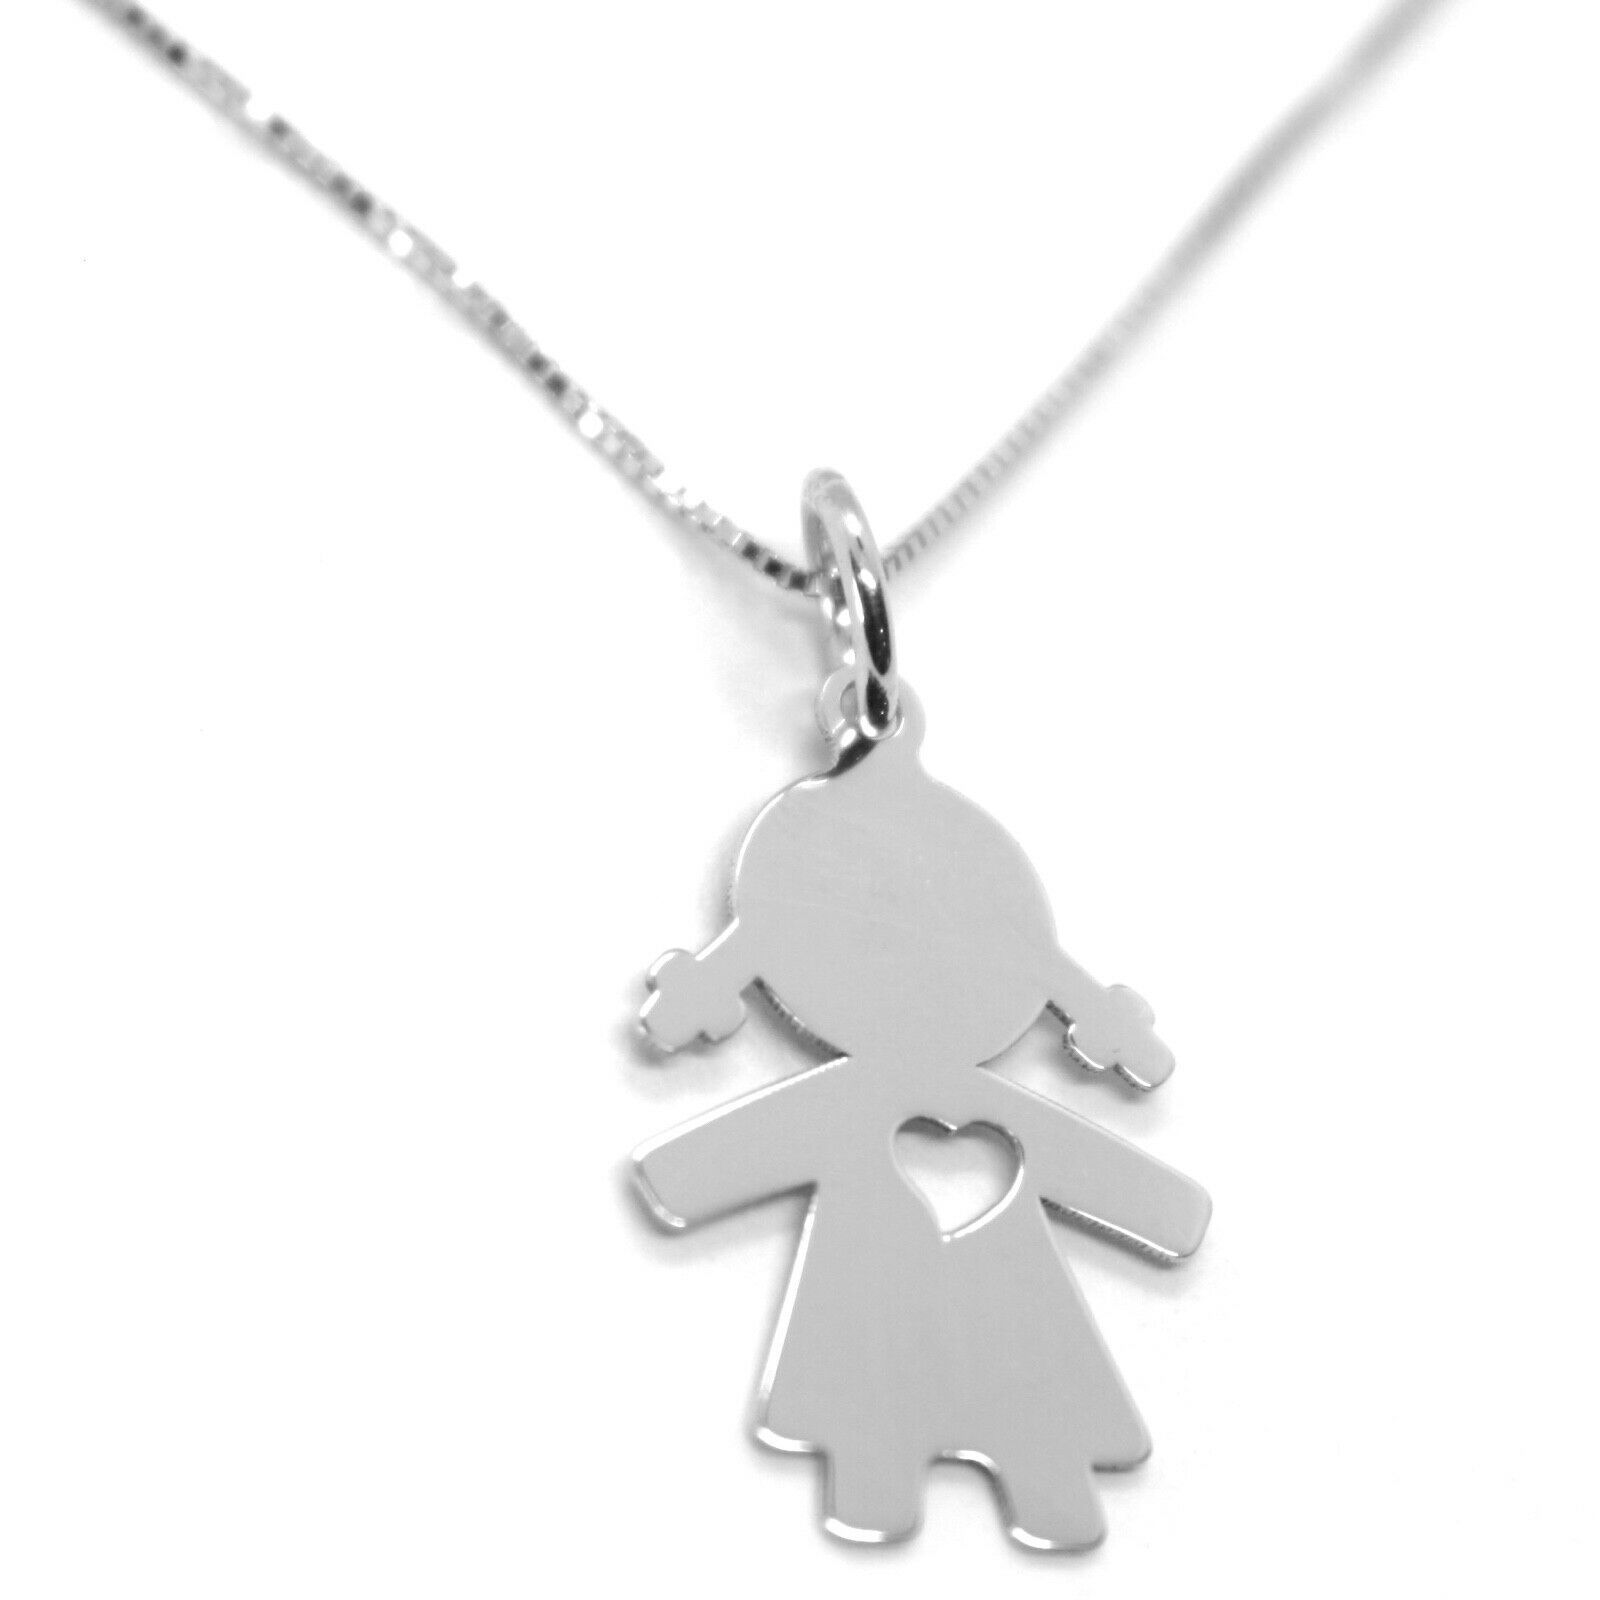 "18K WHITE GOLD MINI NECKLACE, FLAT GIRL HEART PENDANT 0.7"", VENETIAN CHAIN 17.7"""